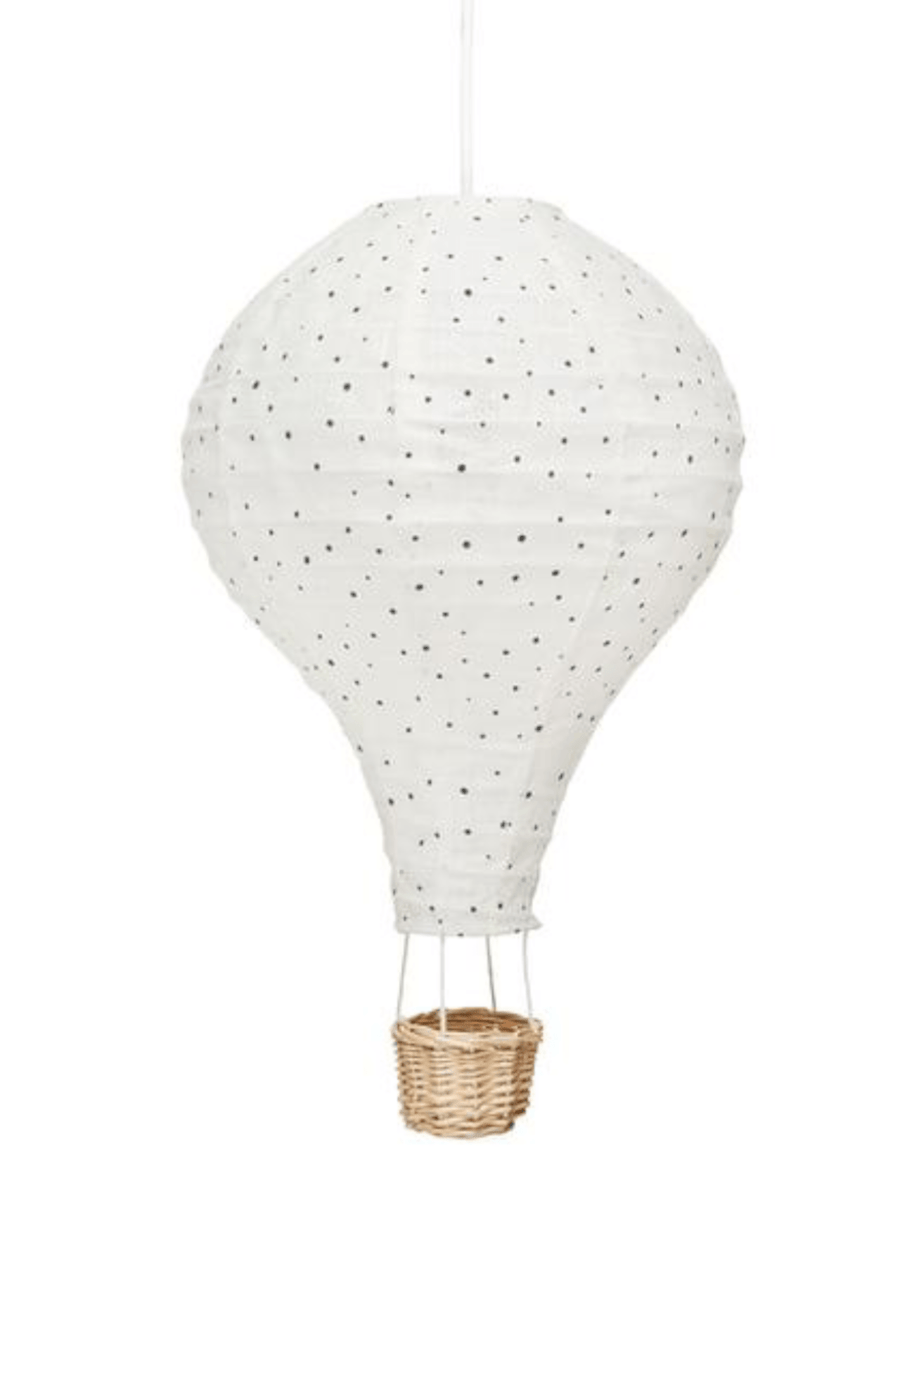 Cam Cam Copenhagen Hot Air Balloon Lamp - Night Sky